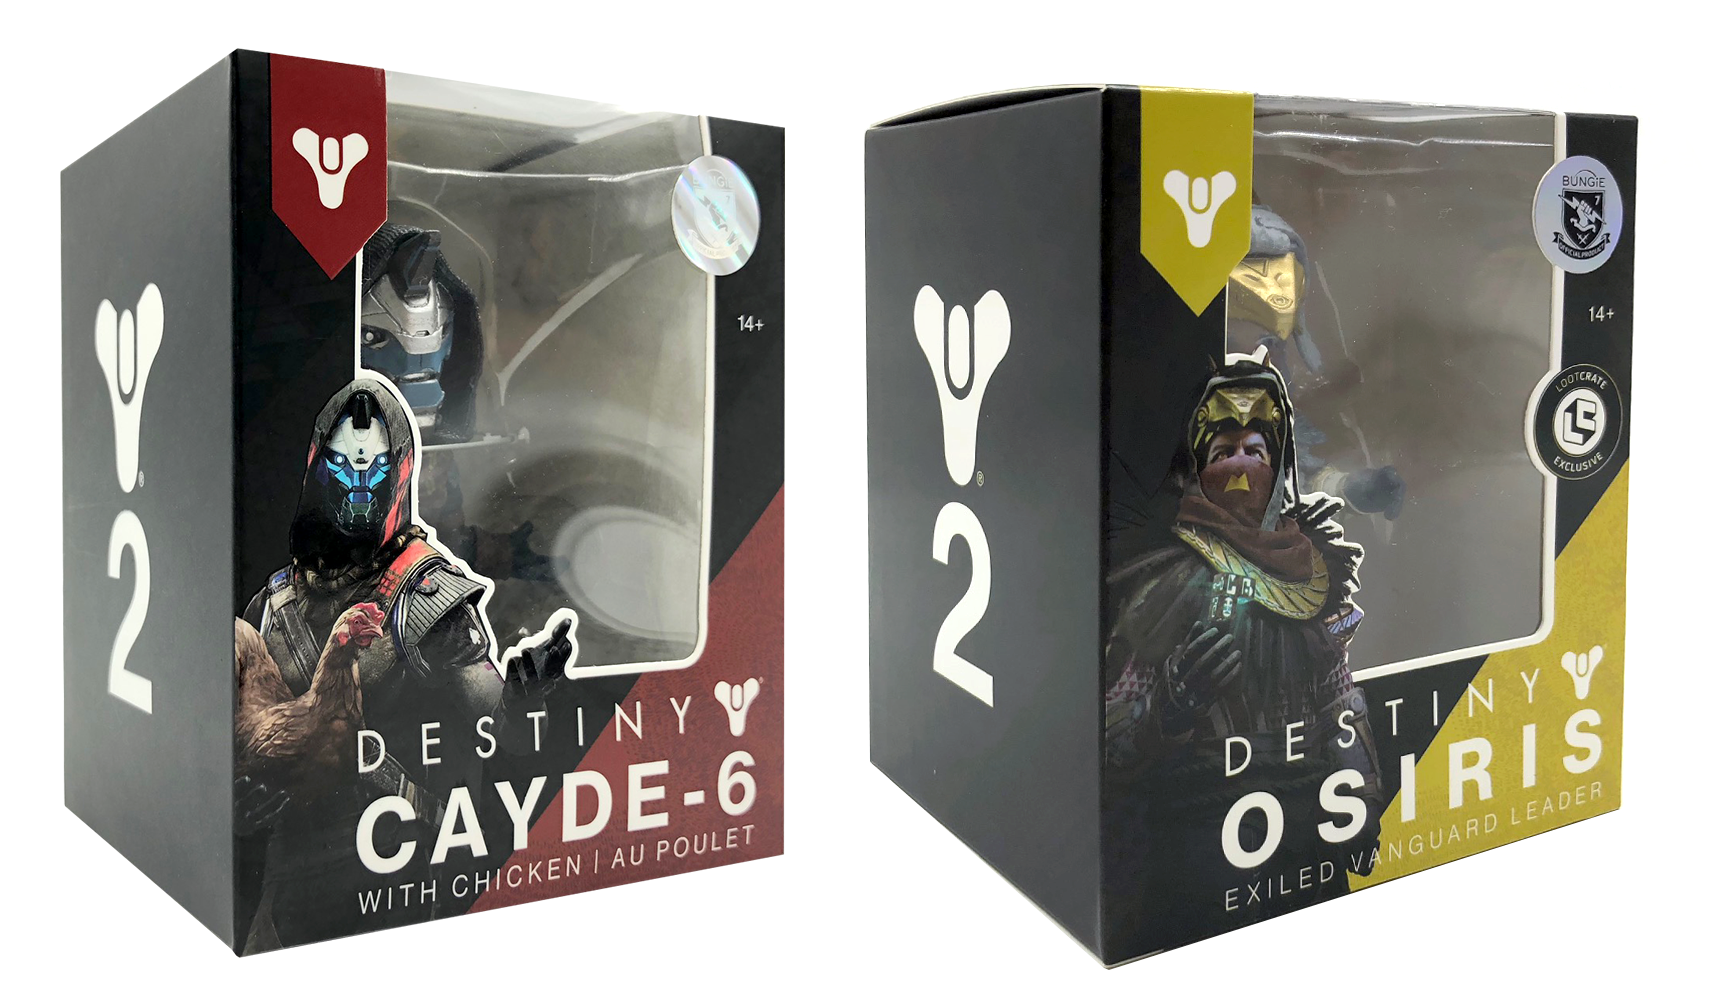 Destiny 2 Vinyl Figure Packaging   Concept and creation under art direction of Garrett Morlan and Lorraine McLees. Style established, created in Adobe Photoshop and Illustrator.